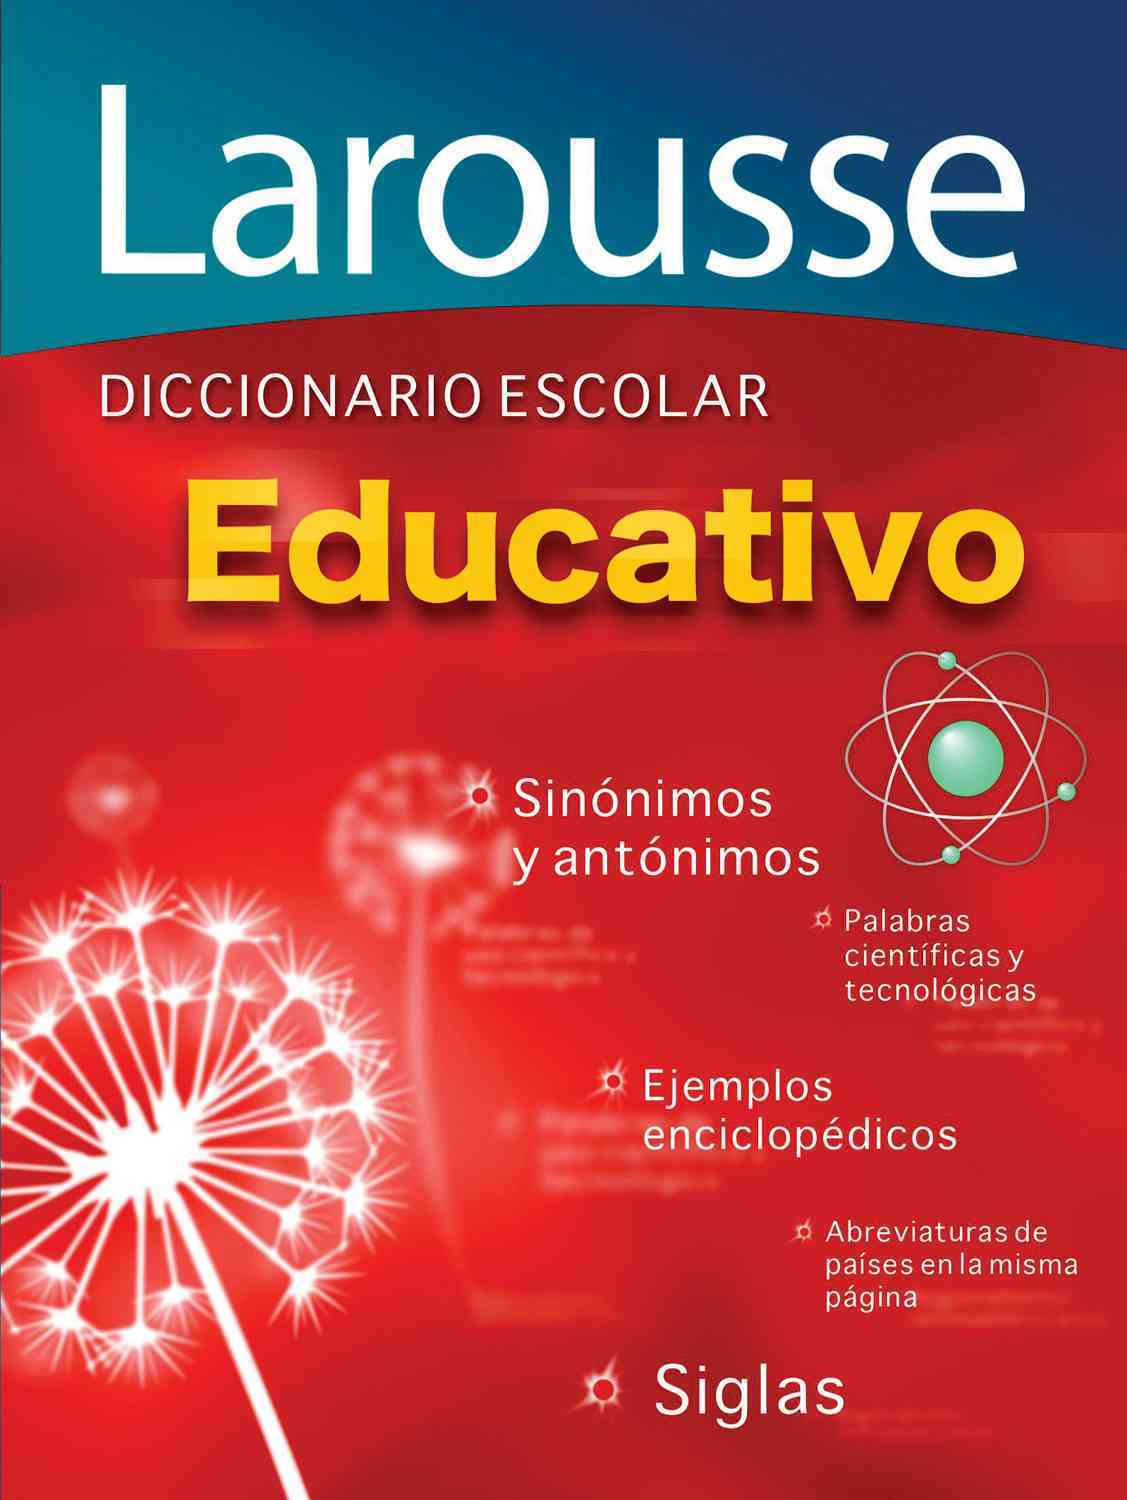 Diccionario Escolar Educativo / Educational School Dictionary By Larousse Mexico (COR)/ Alboukrek, Aaron (EDT)